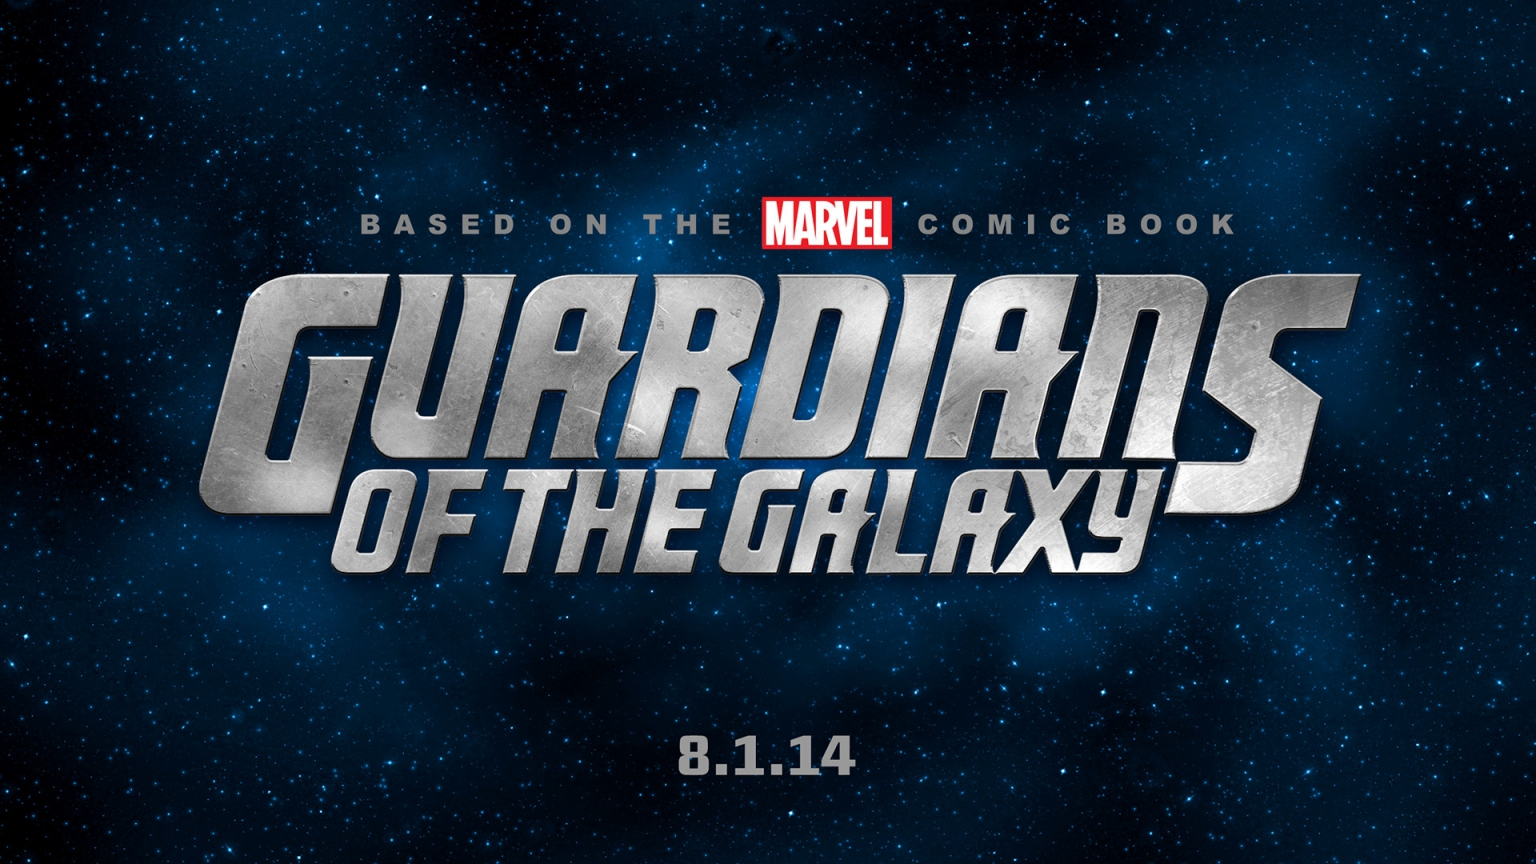 Guardians Of The Galaxy Hd Wallpaper Wallpaperfx